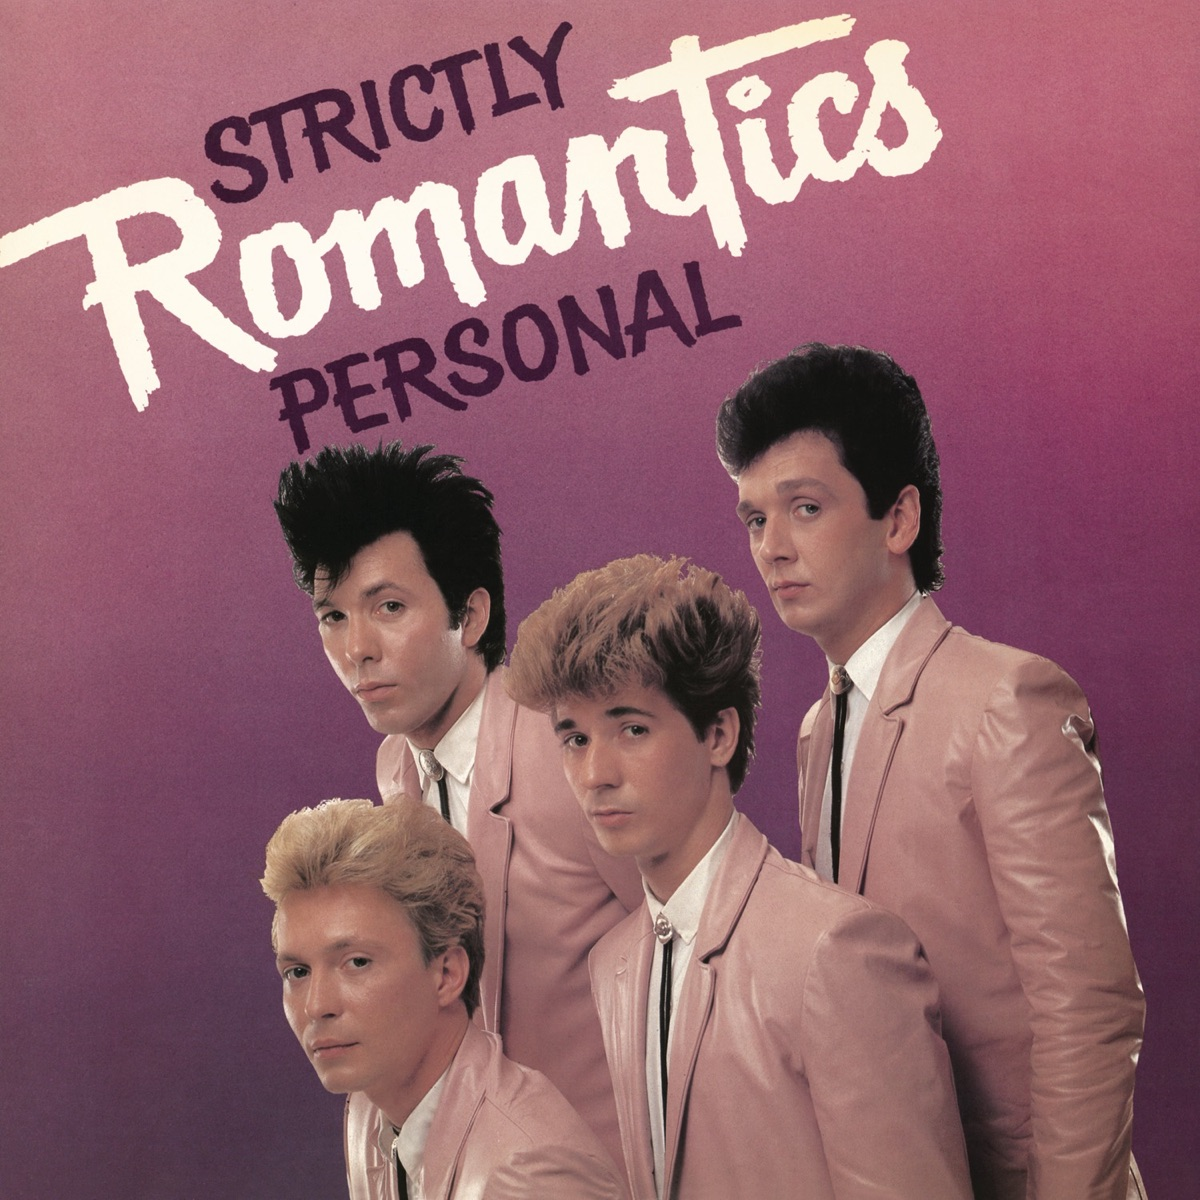 Strictly Personal The Romantics CD cover